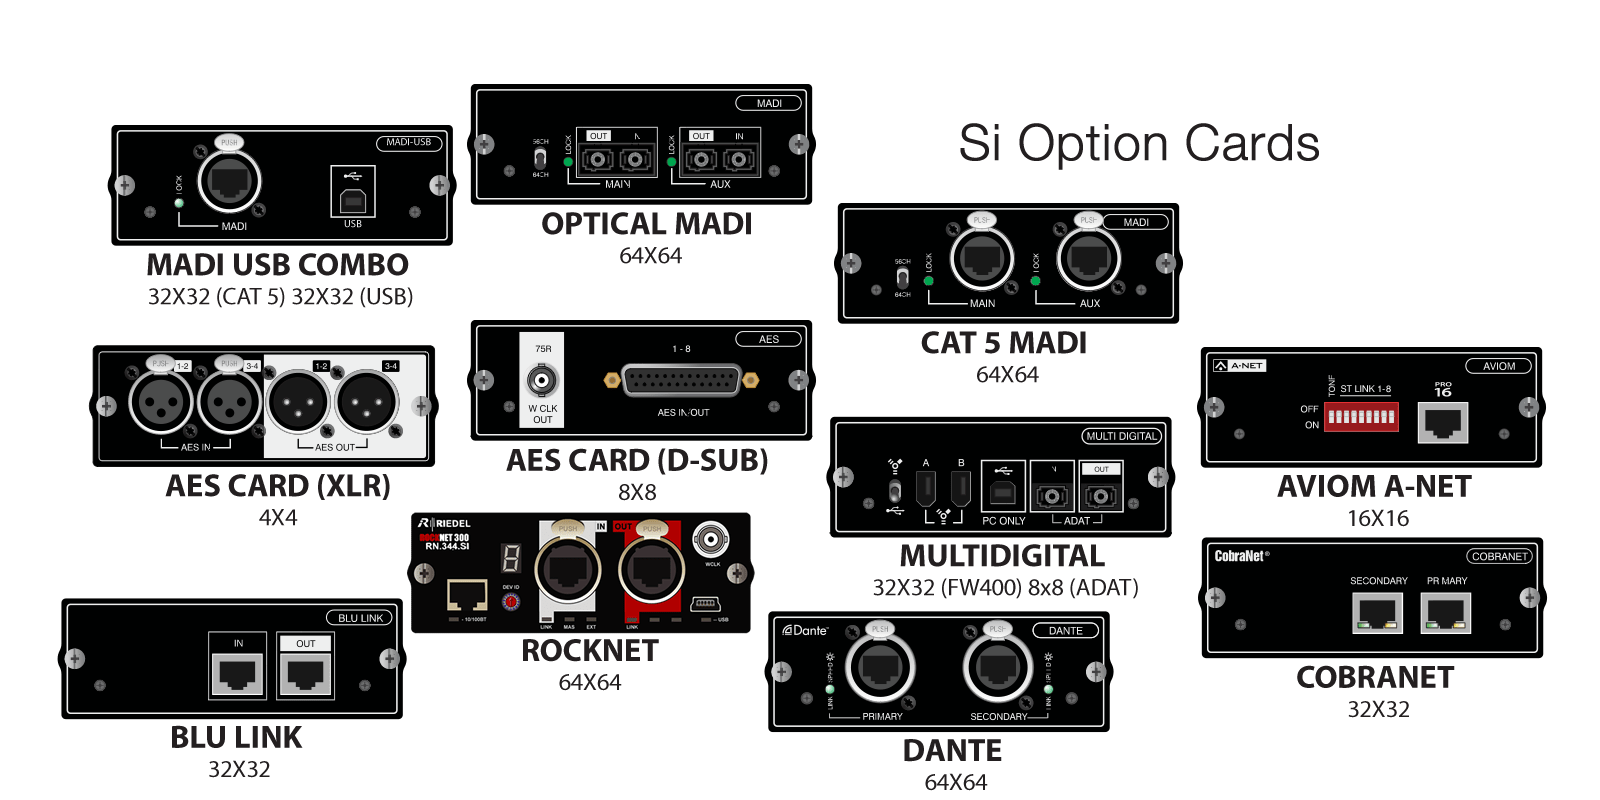 Si Option Cards Soundcraft